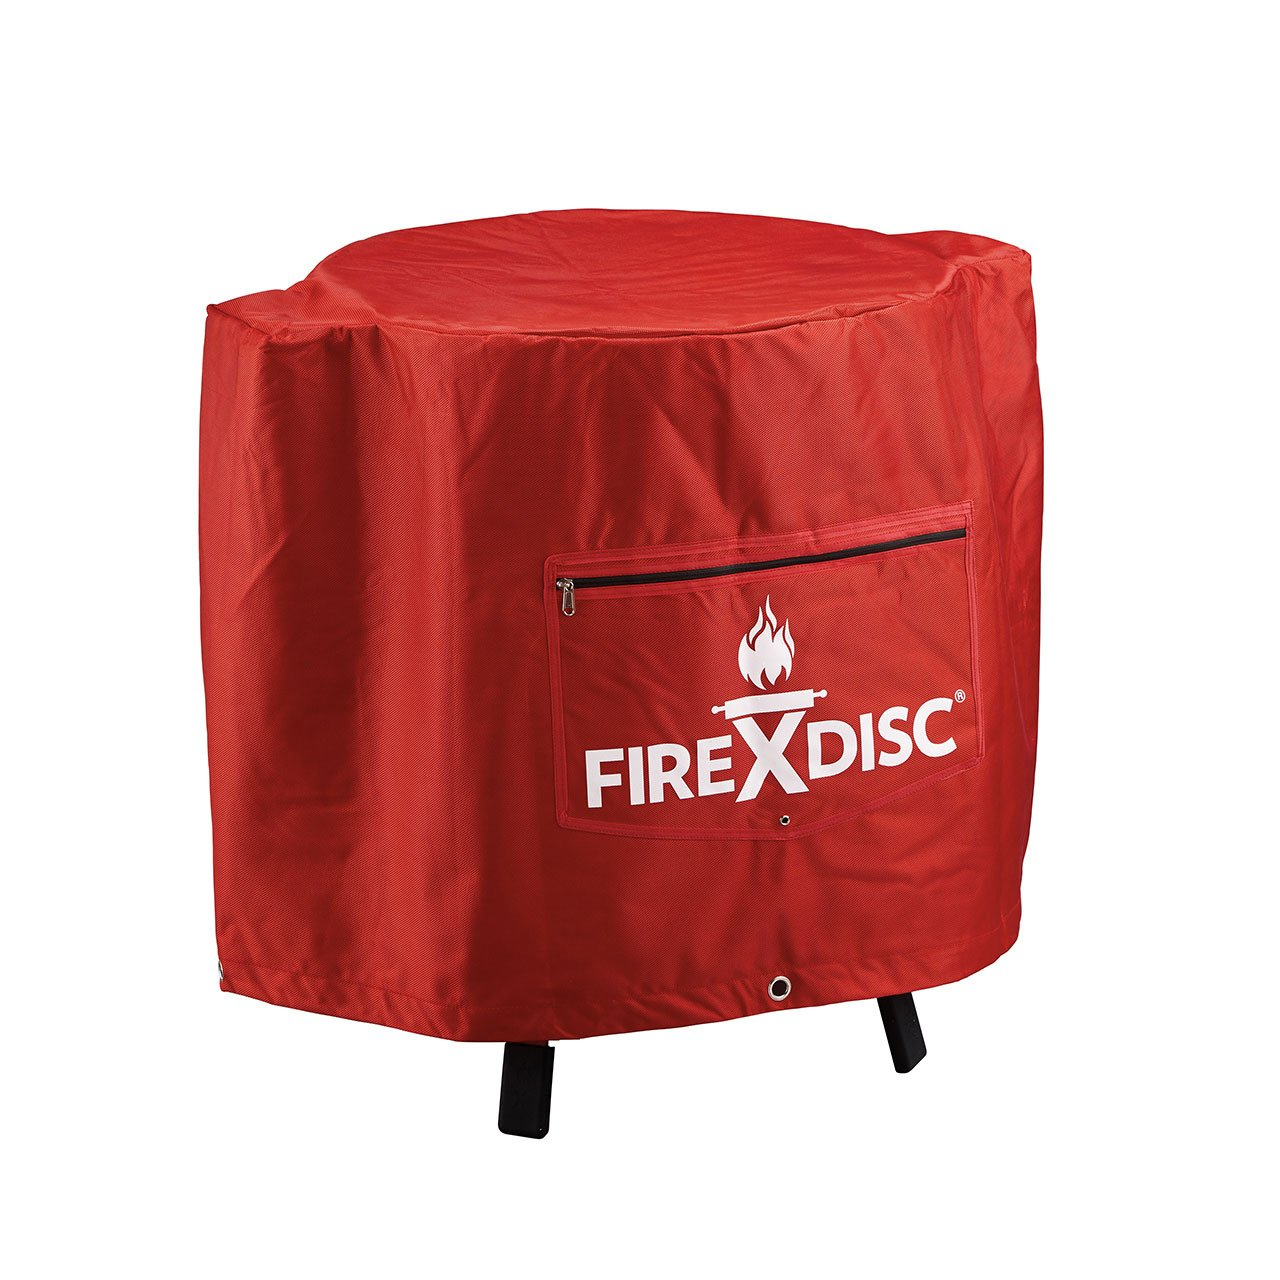 "FireDisc - Cover Jacket Sheath for FireDisc - 24"" Plow Disc Cooker 